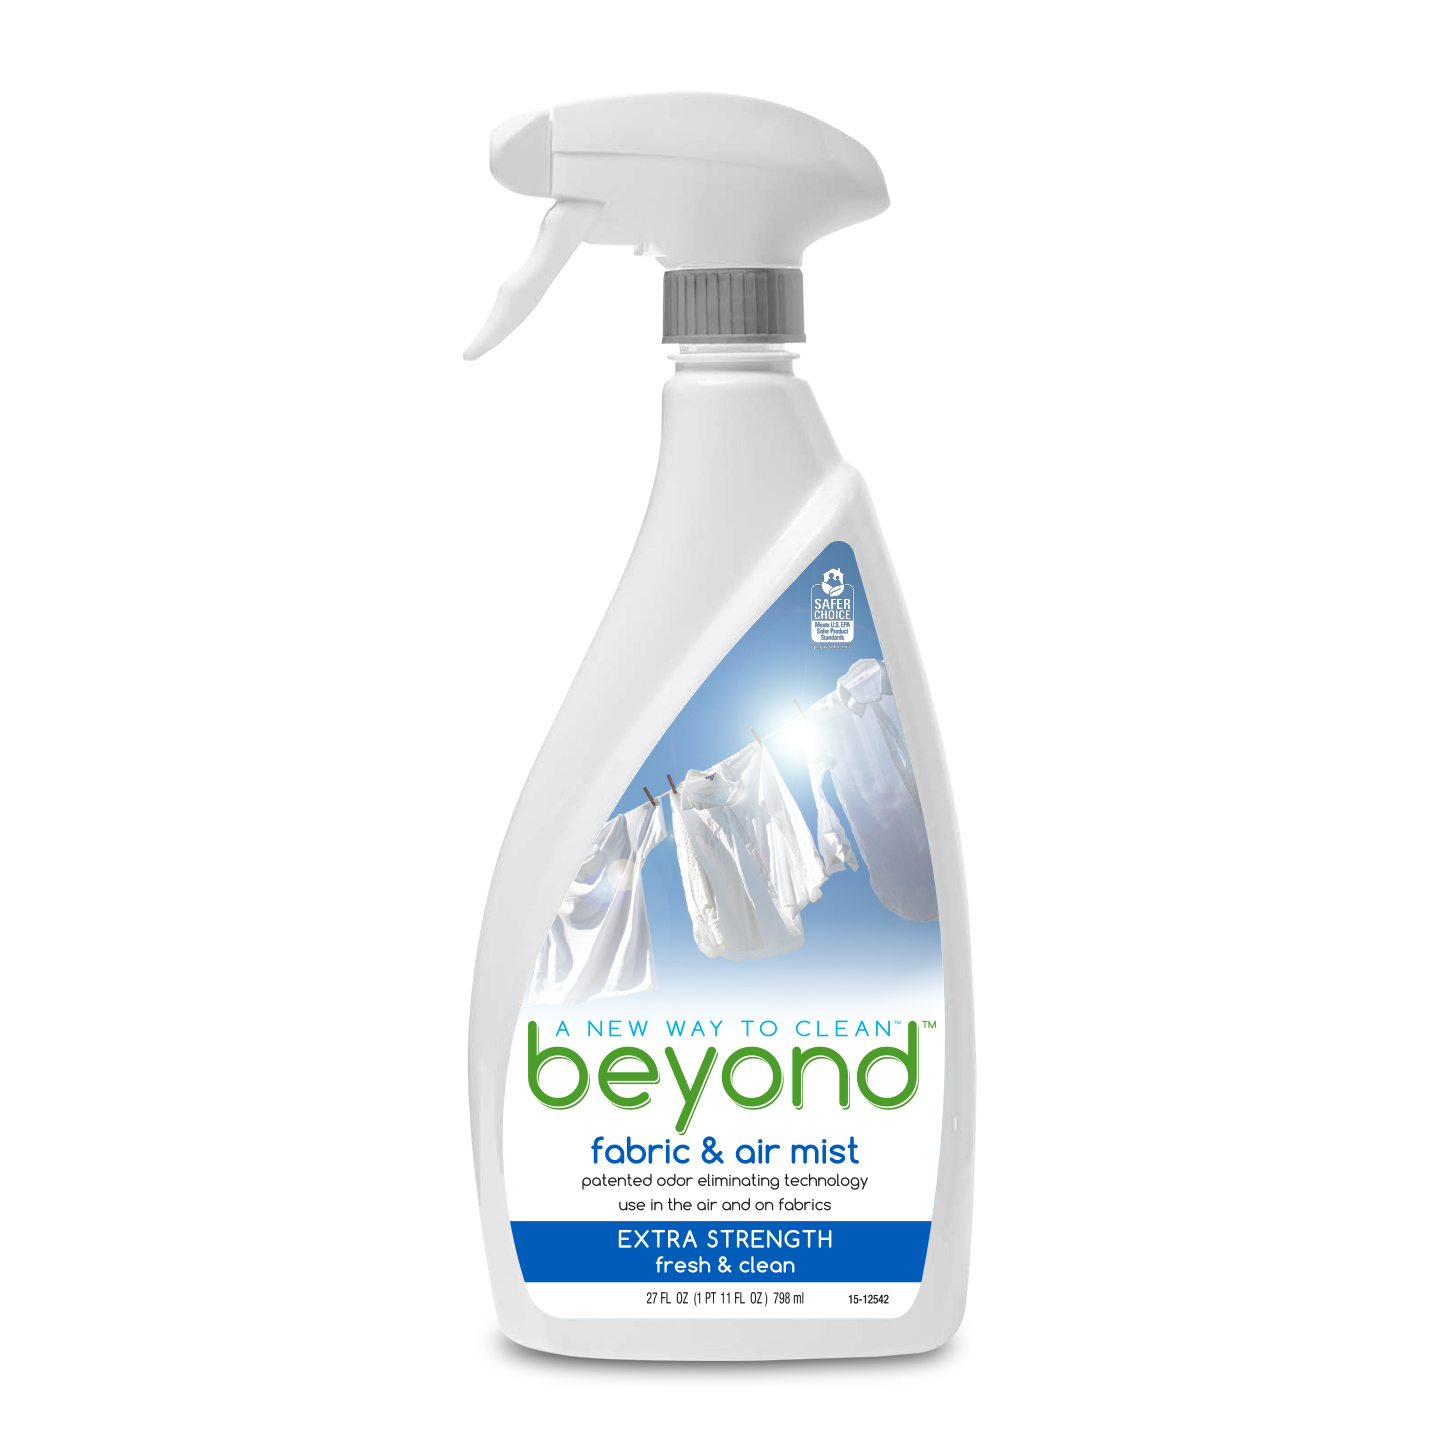 Beyond™ Fabric & Air Mist, Extra Strength spray bottle